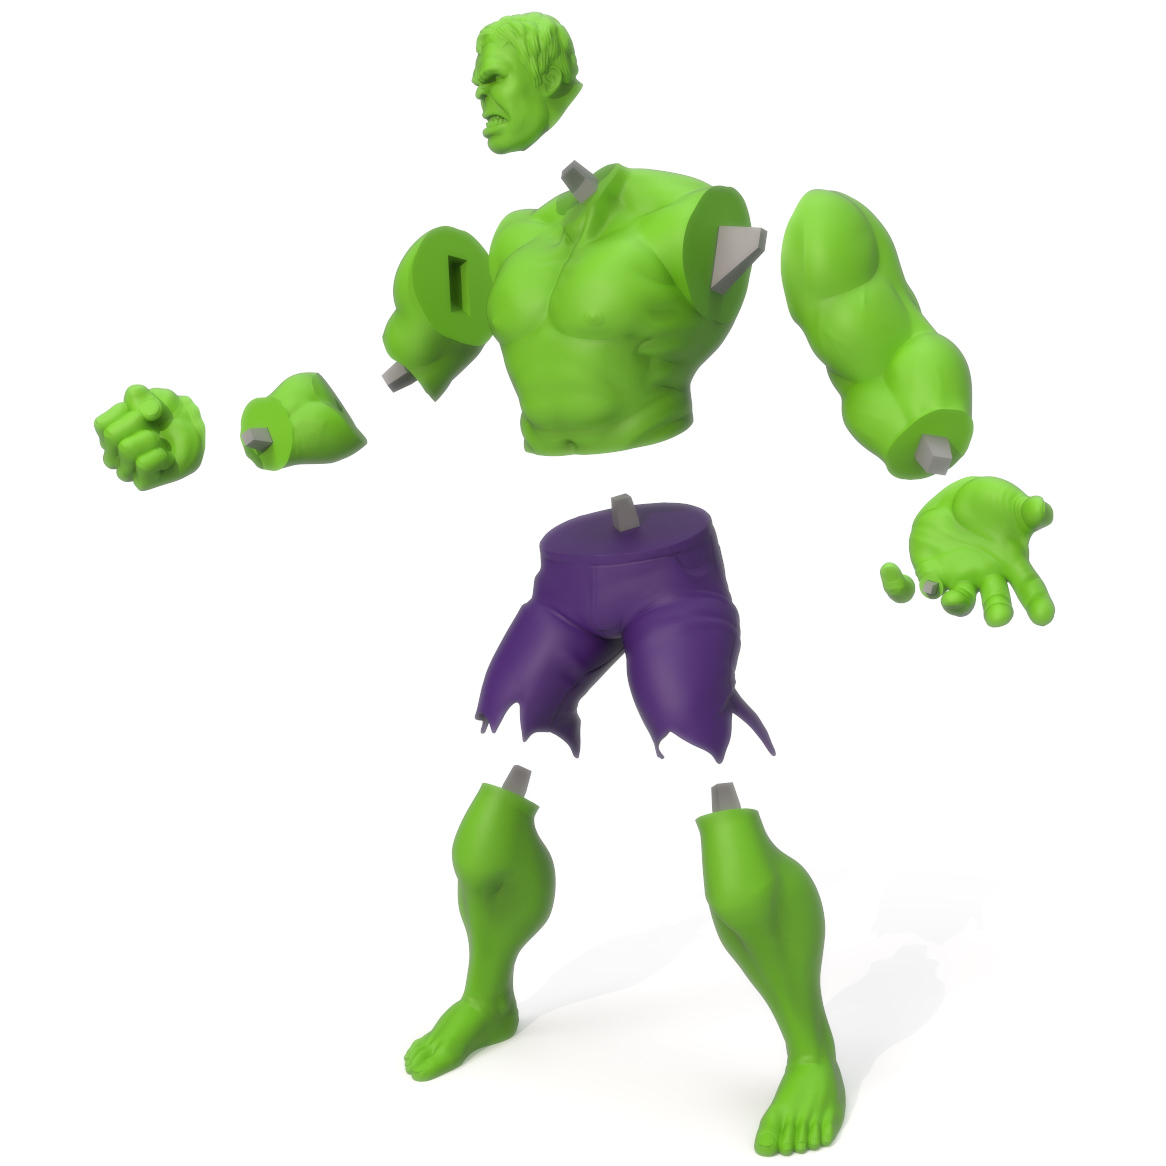 Hulk, 3D Printer Models